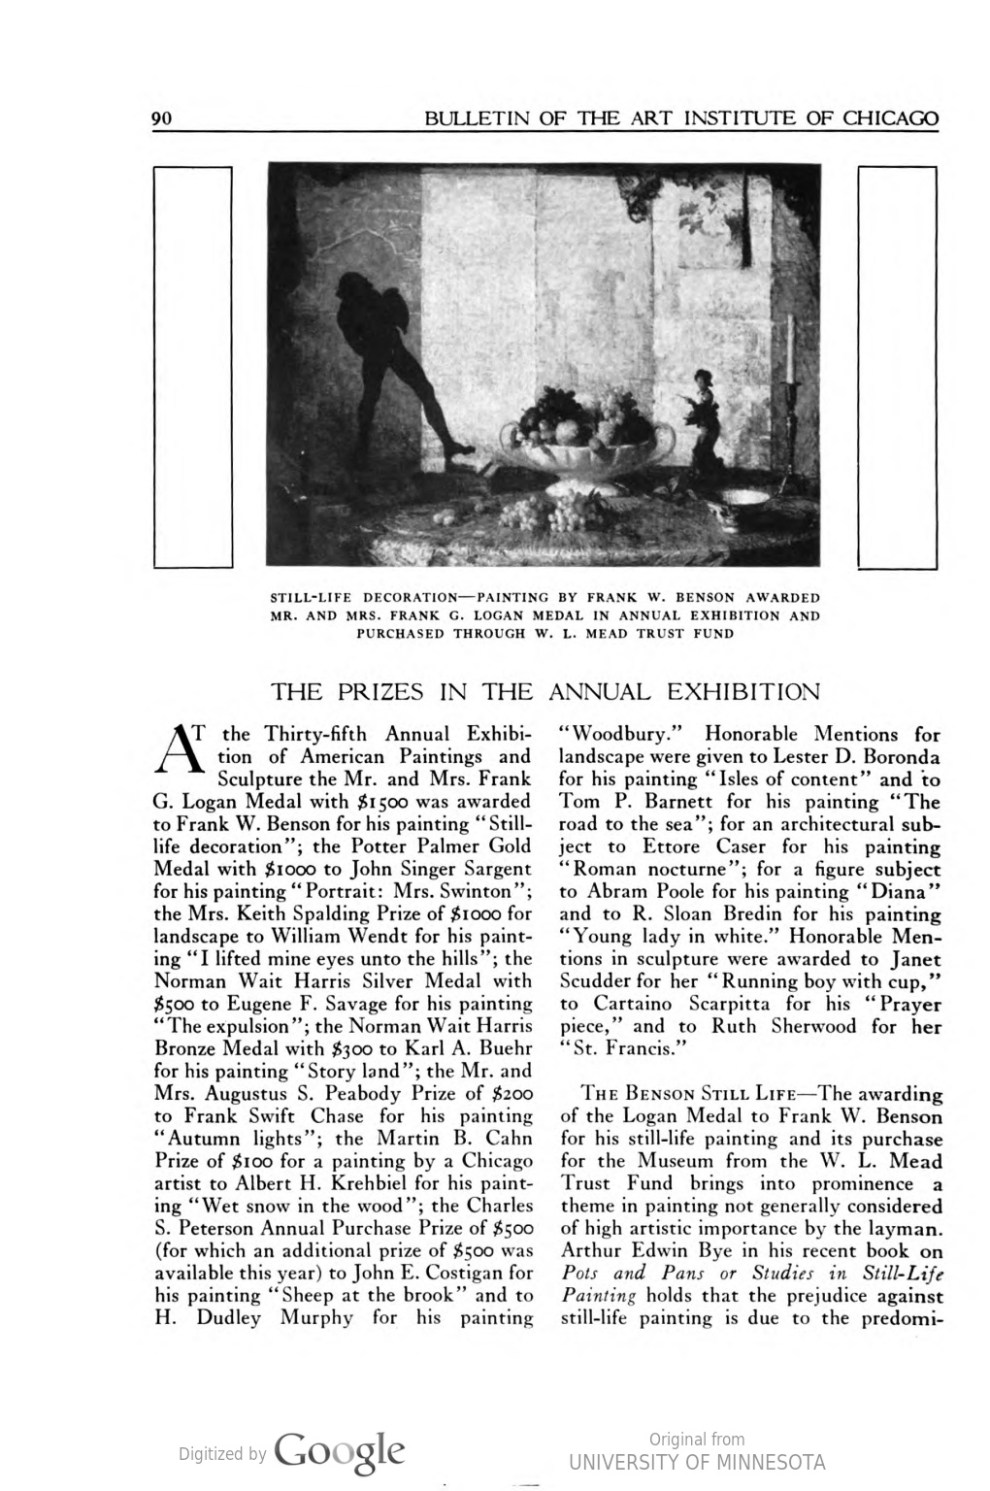 "Bulletin of the Art Institute of Chicago, Chicago, IL, ""The Prizes in the Annual Exhibition"", December 1, 1922, volume 16, number 7, pages 90-92, not illustrated."